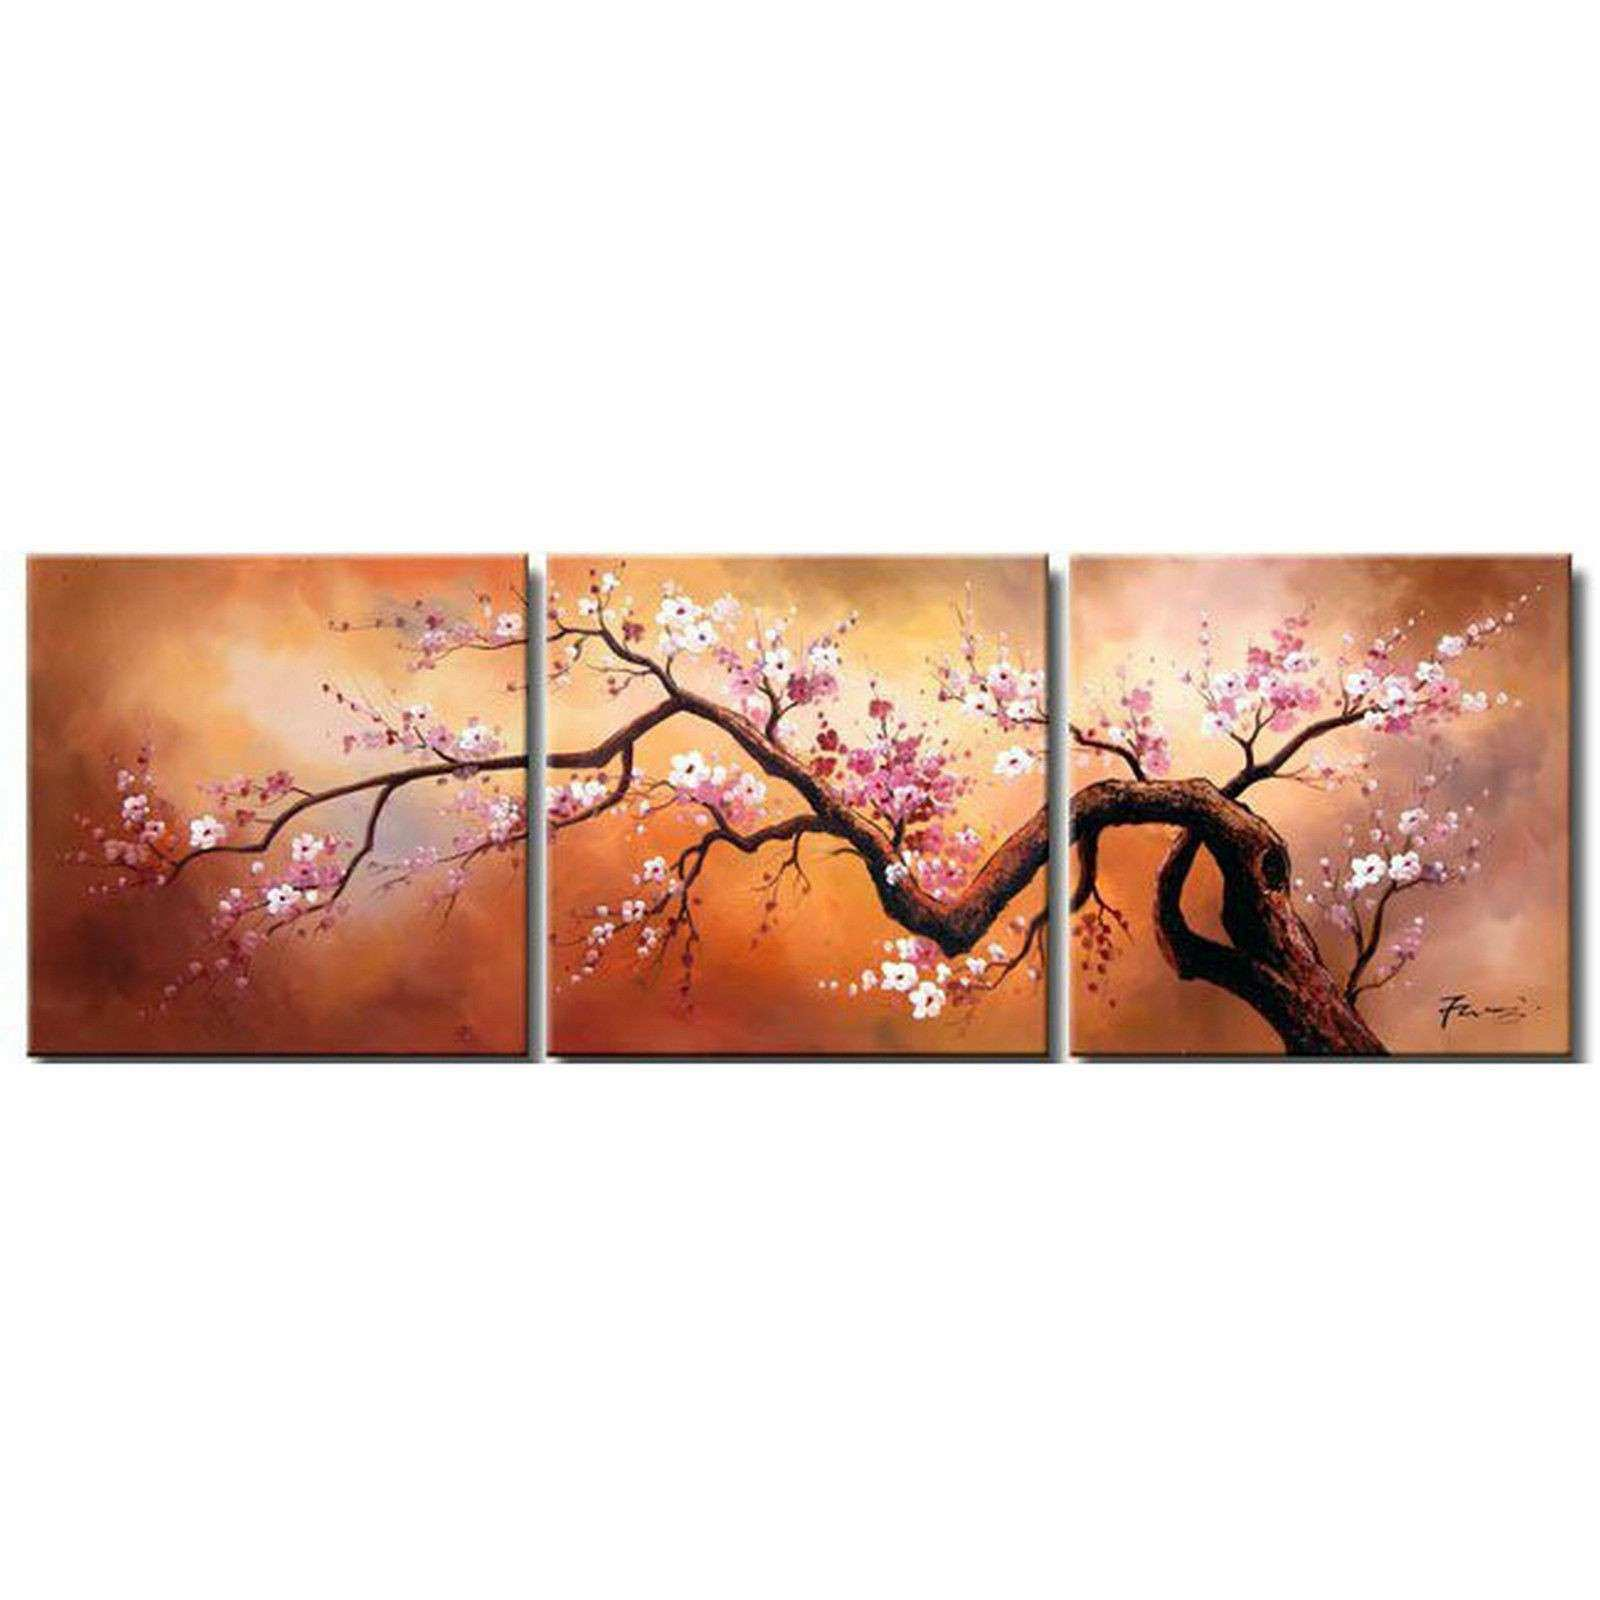 3 pieces Modern Abstract Art Oil Painting Wall Decor Tree